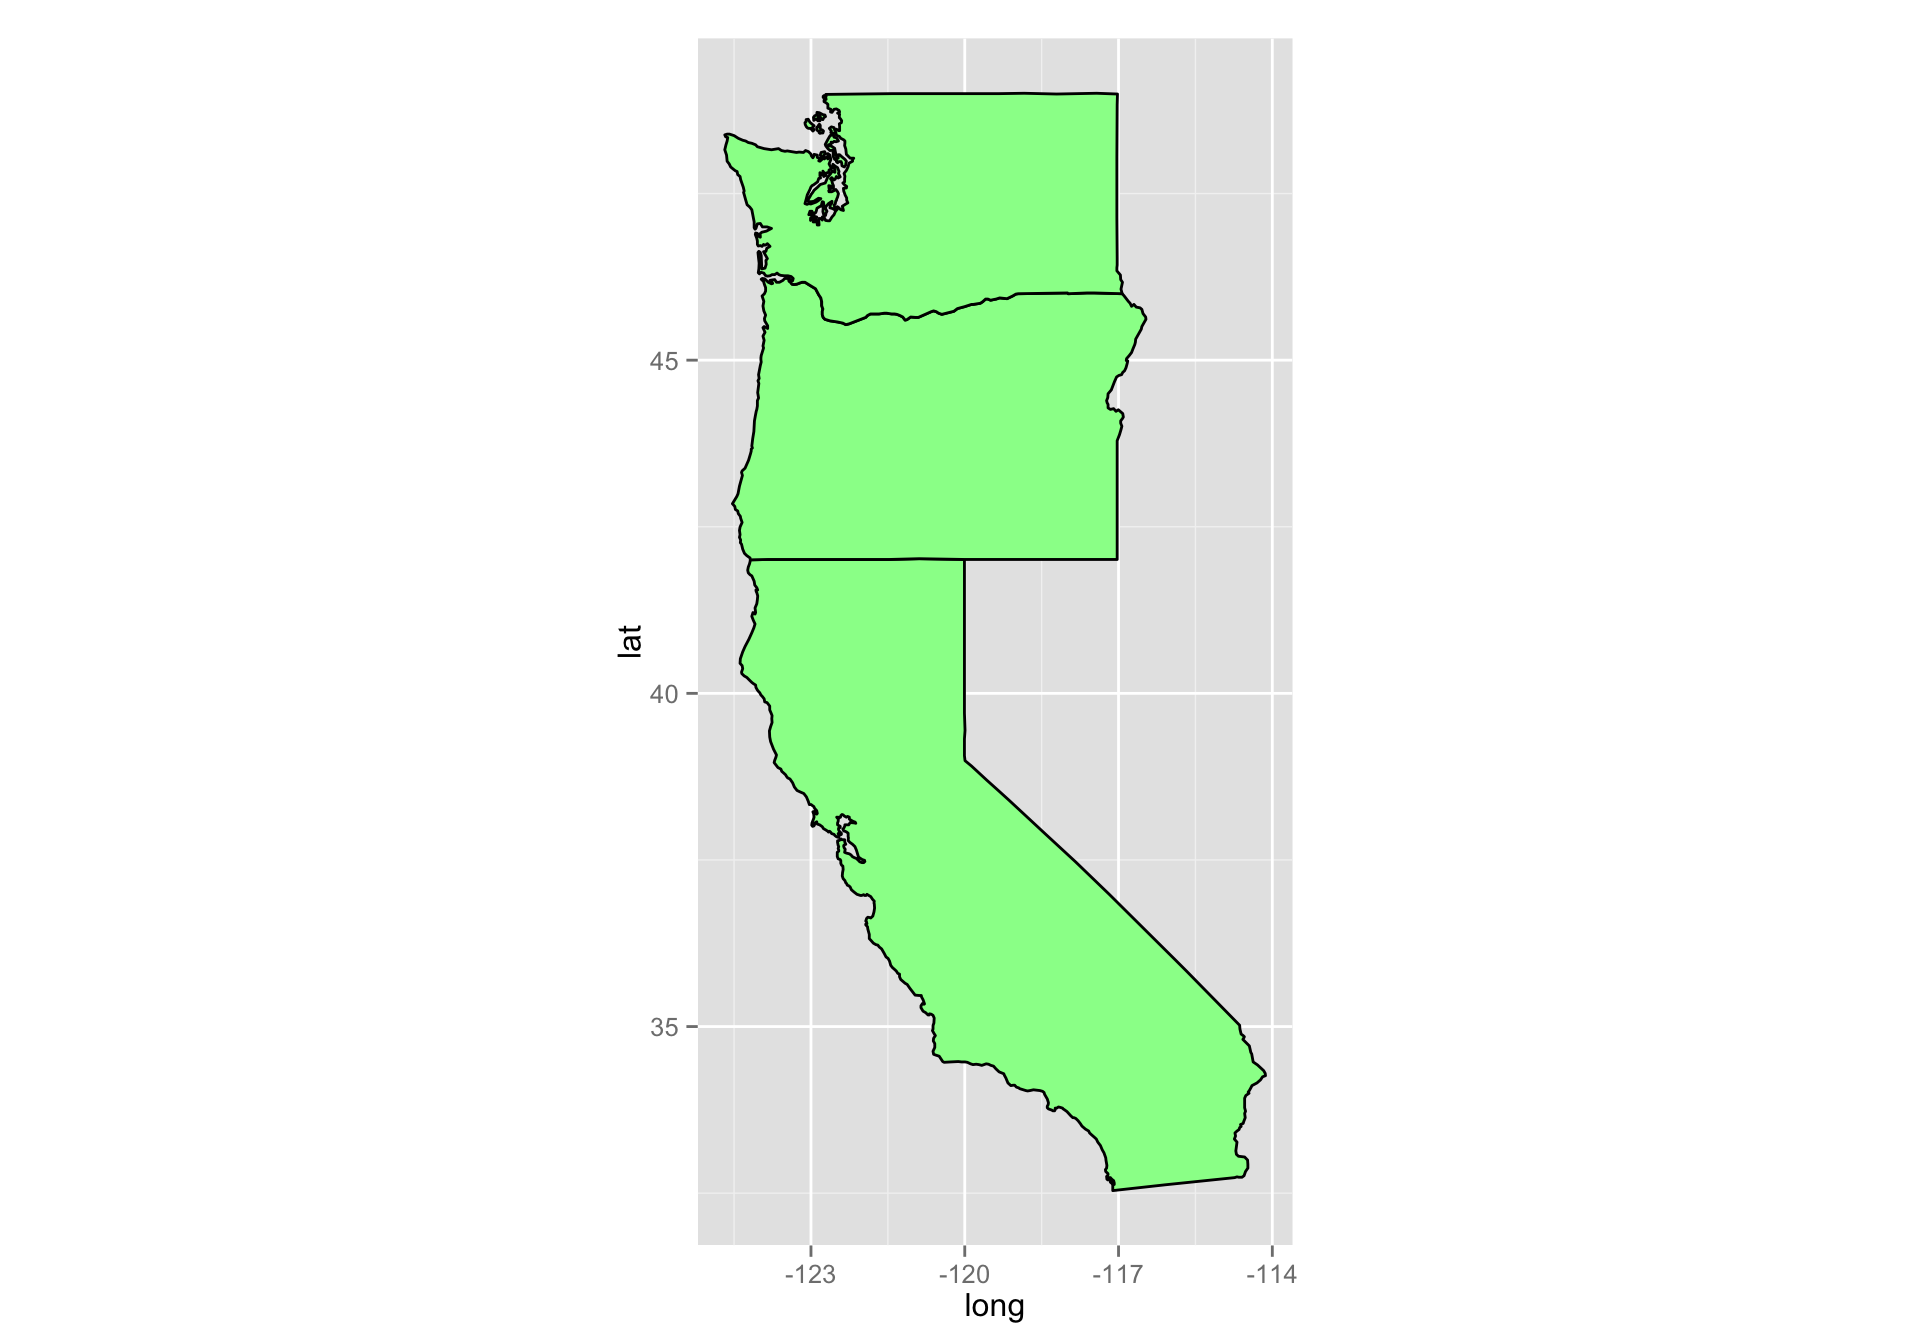 Making Maps With R · Reproducible Research.